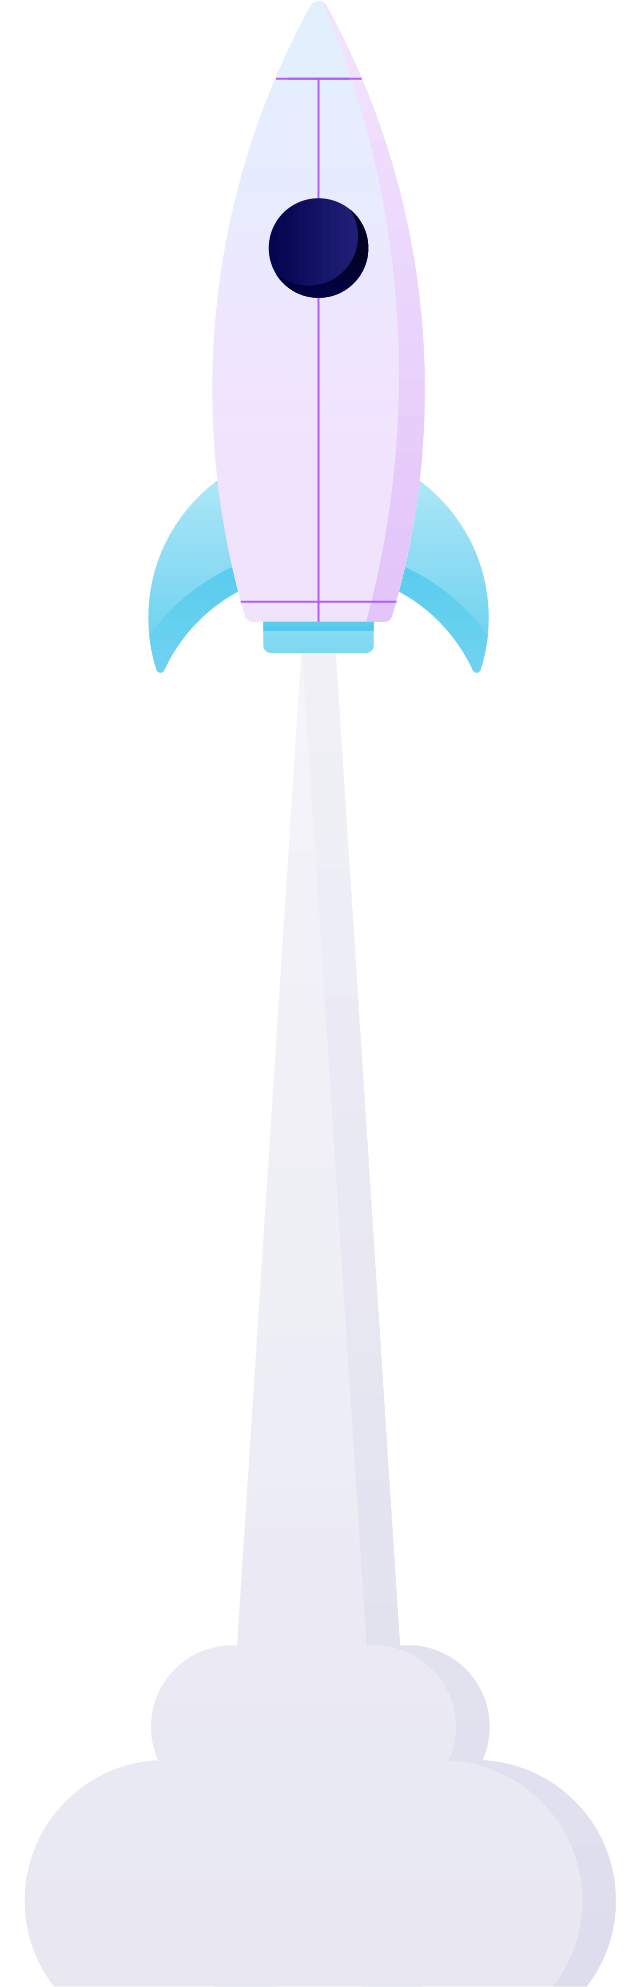 A rocket ship launching with steam underneath it. Illustration